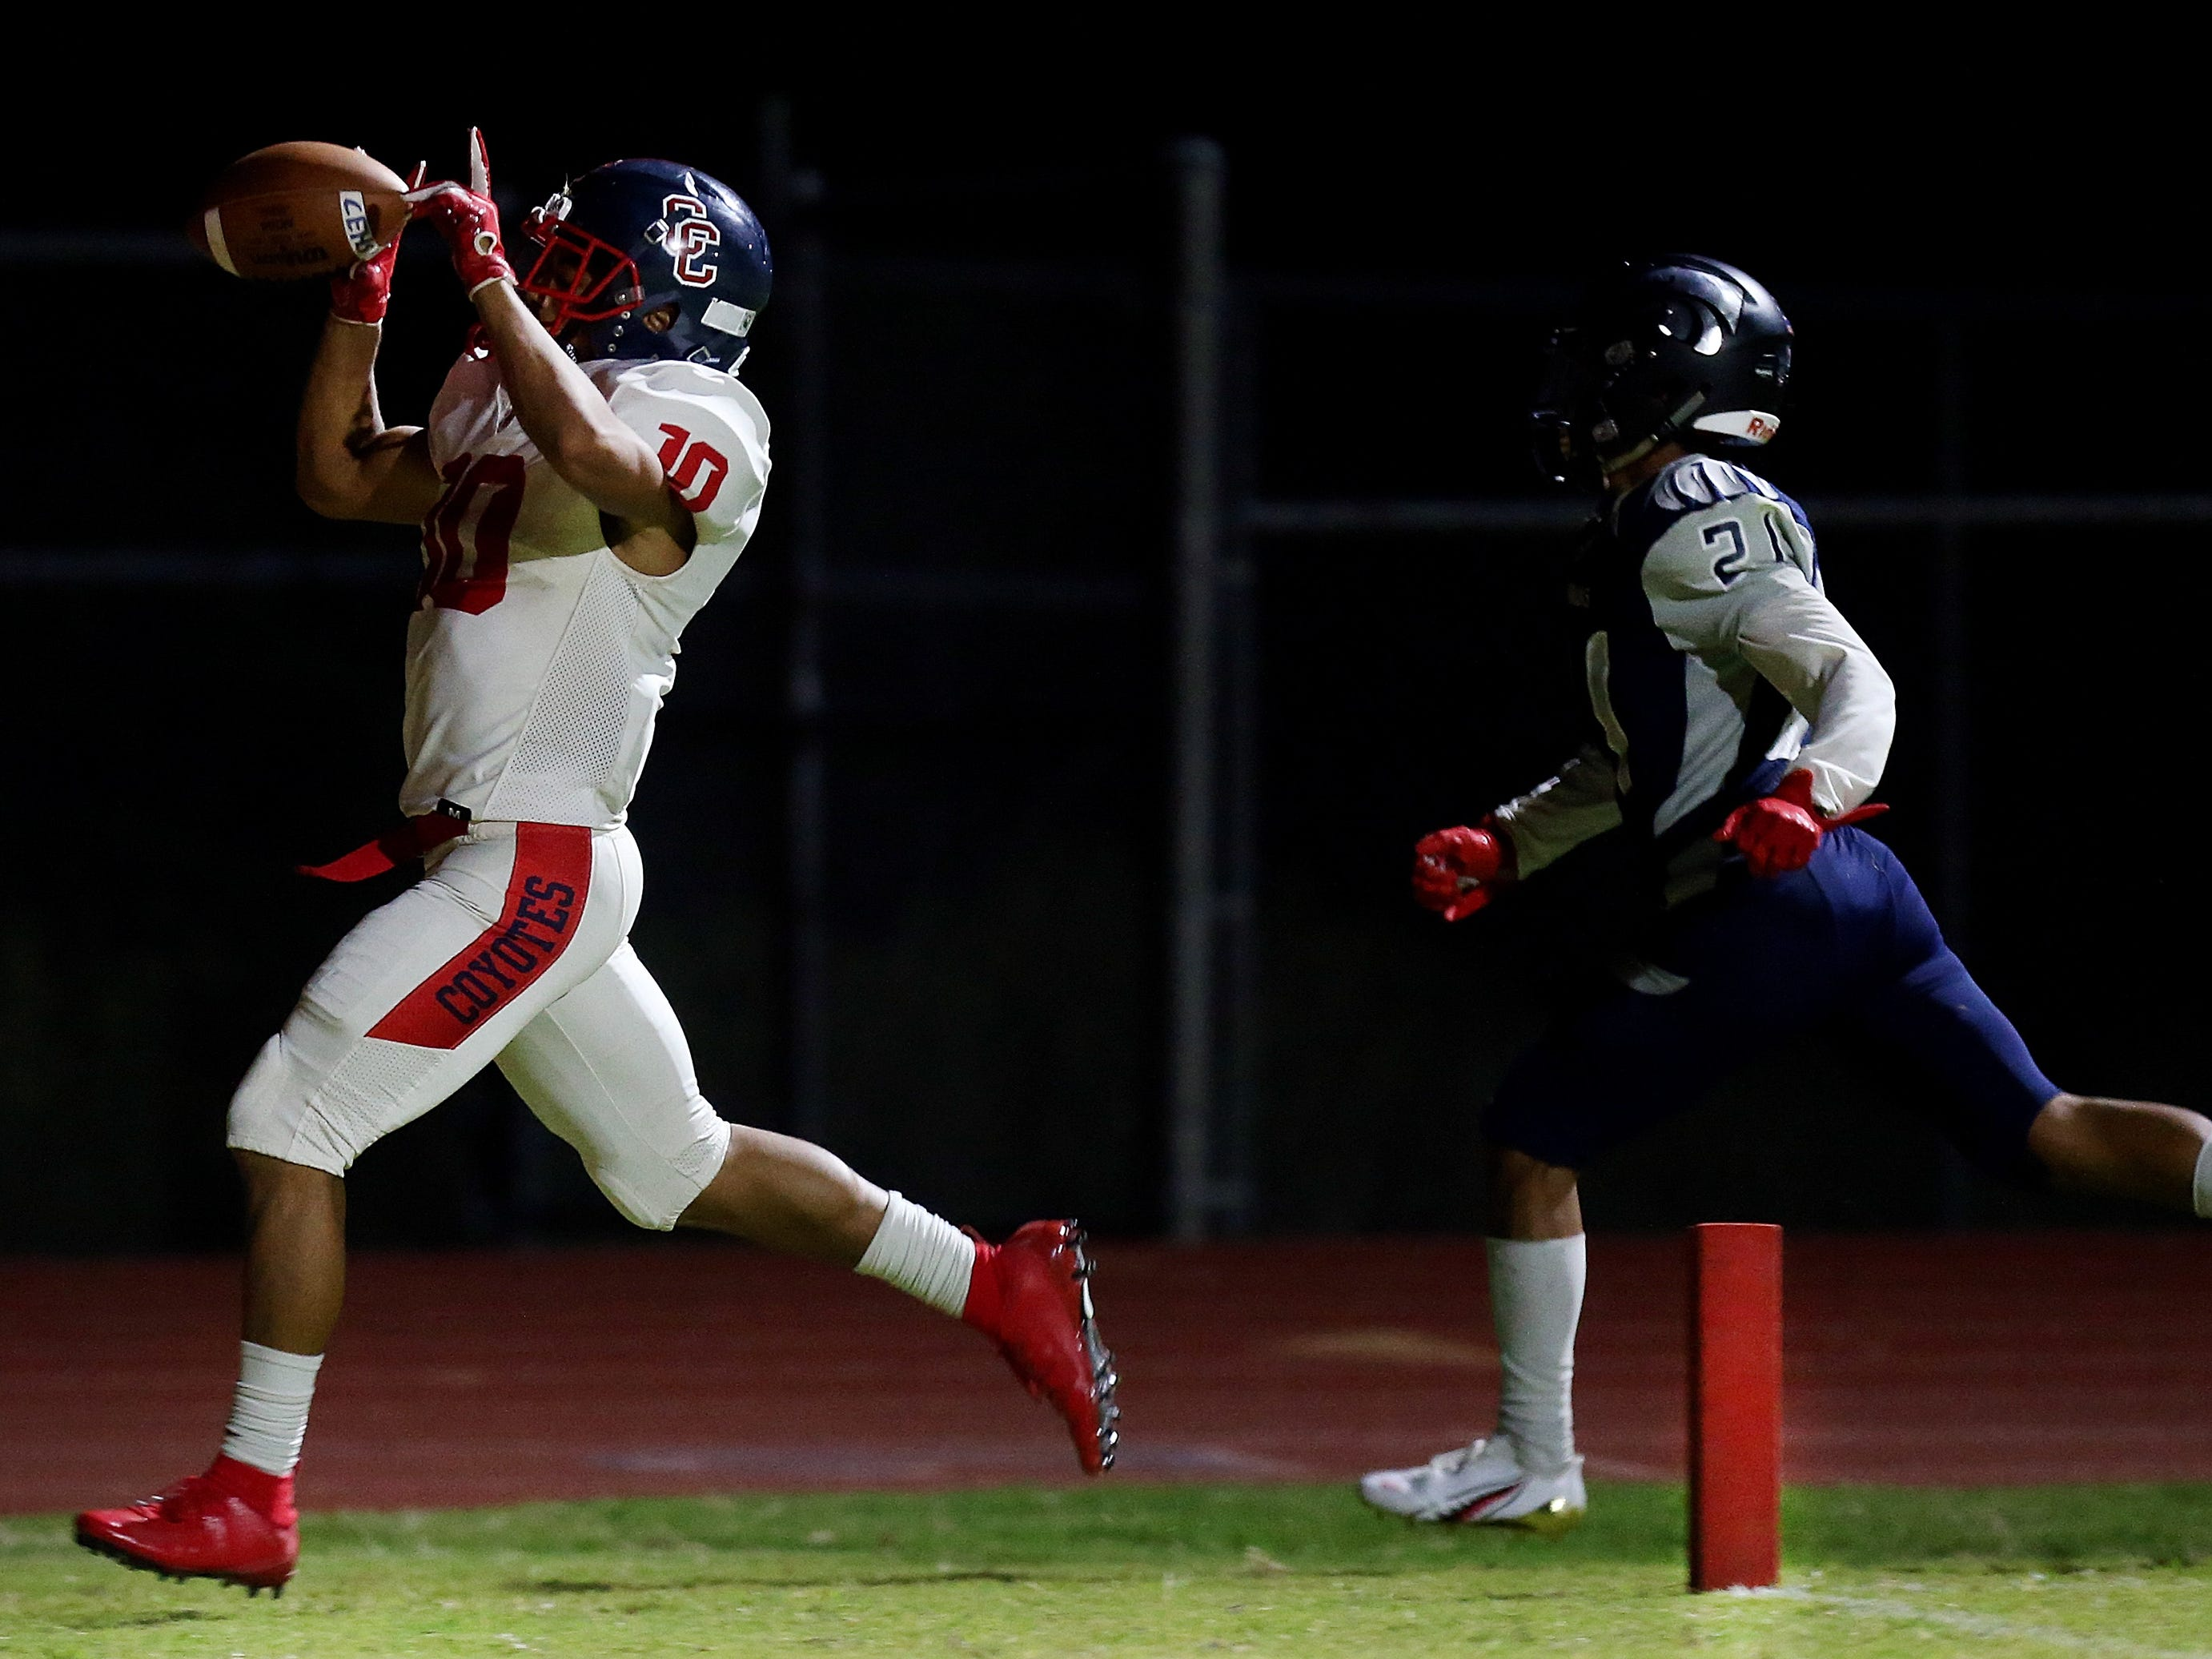 Peoria Centennial's Jeiel Stark (10) motions skyward after a touchdown score ahead of Ironwood Ridge defensive back Daniel Aguirre (21) during the third quarter of the Ironwood Ridge vs. Peoria Centennial high school football game at Ironwood Ridge High School, 2475 W. Naranja Drive, on Sept. 14, 2018, in Oro Valley, Ariz. Centennial won 55-7.